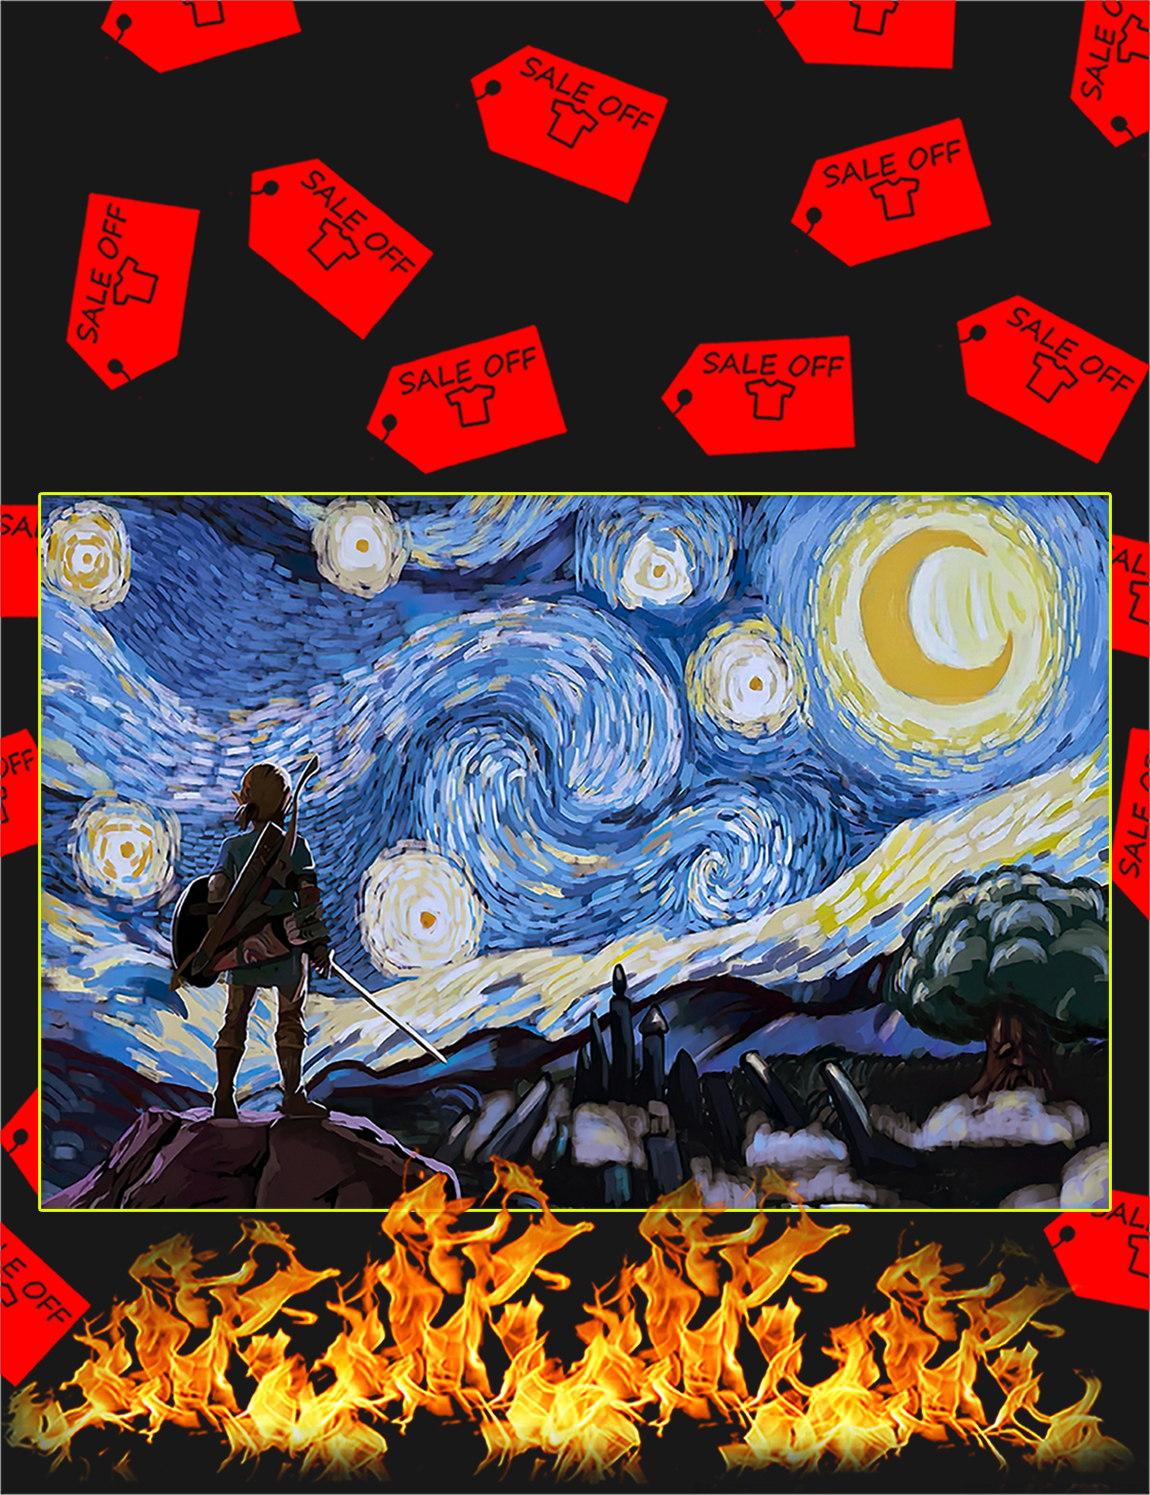 The legend of zelda starry night van gogh poster - A2